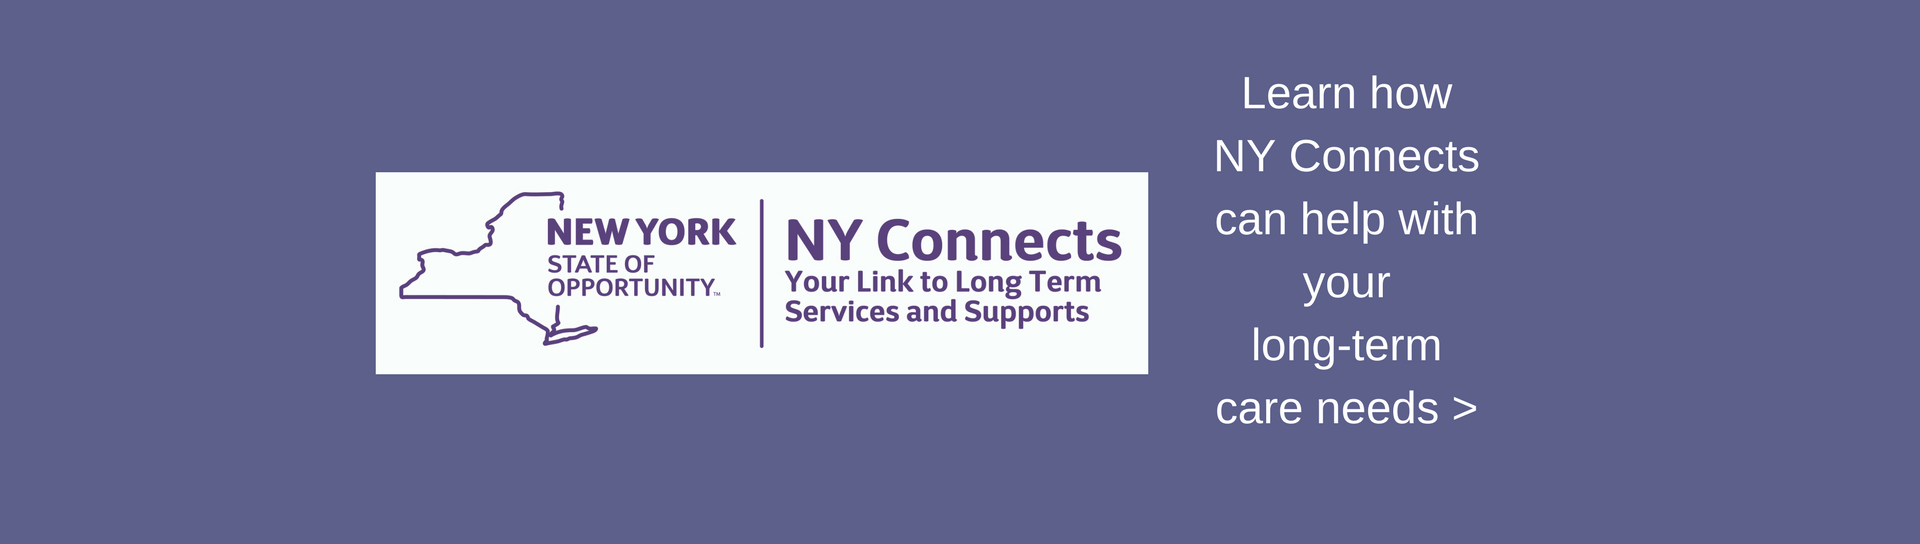 Learn how NY Connects can help with your long-term care needs